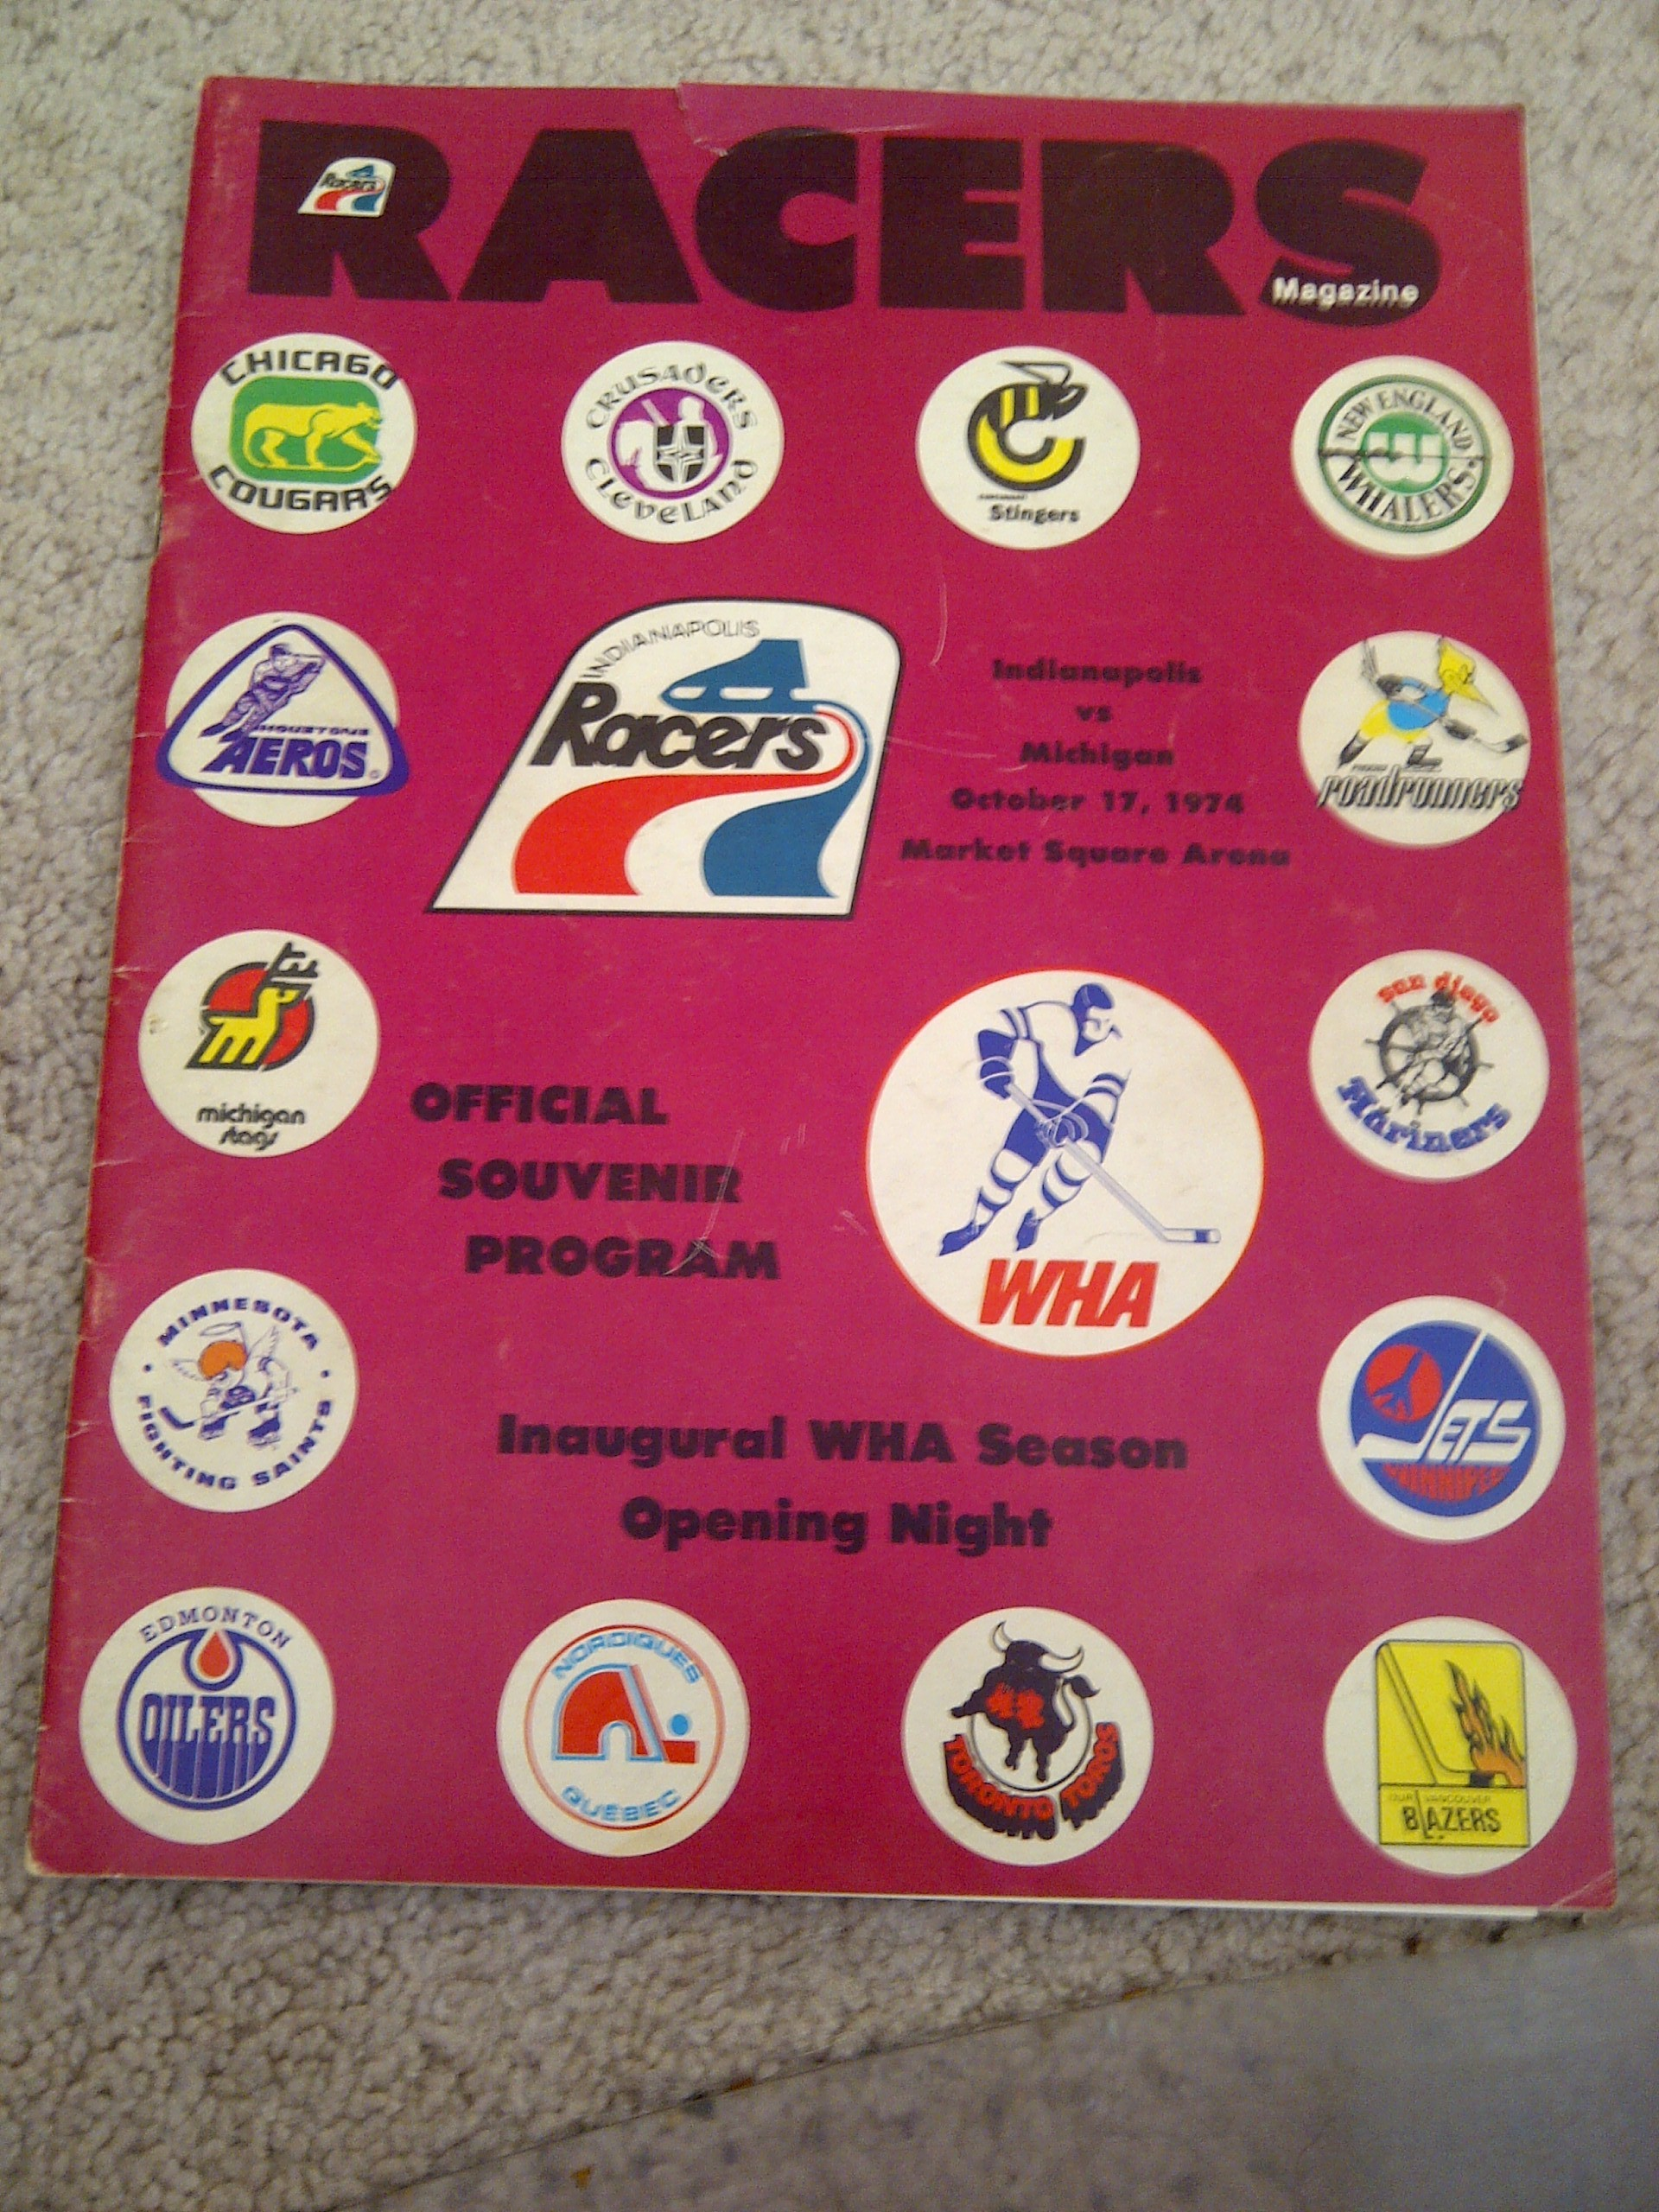 The program from the first game in Indianapolis Racers history.